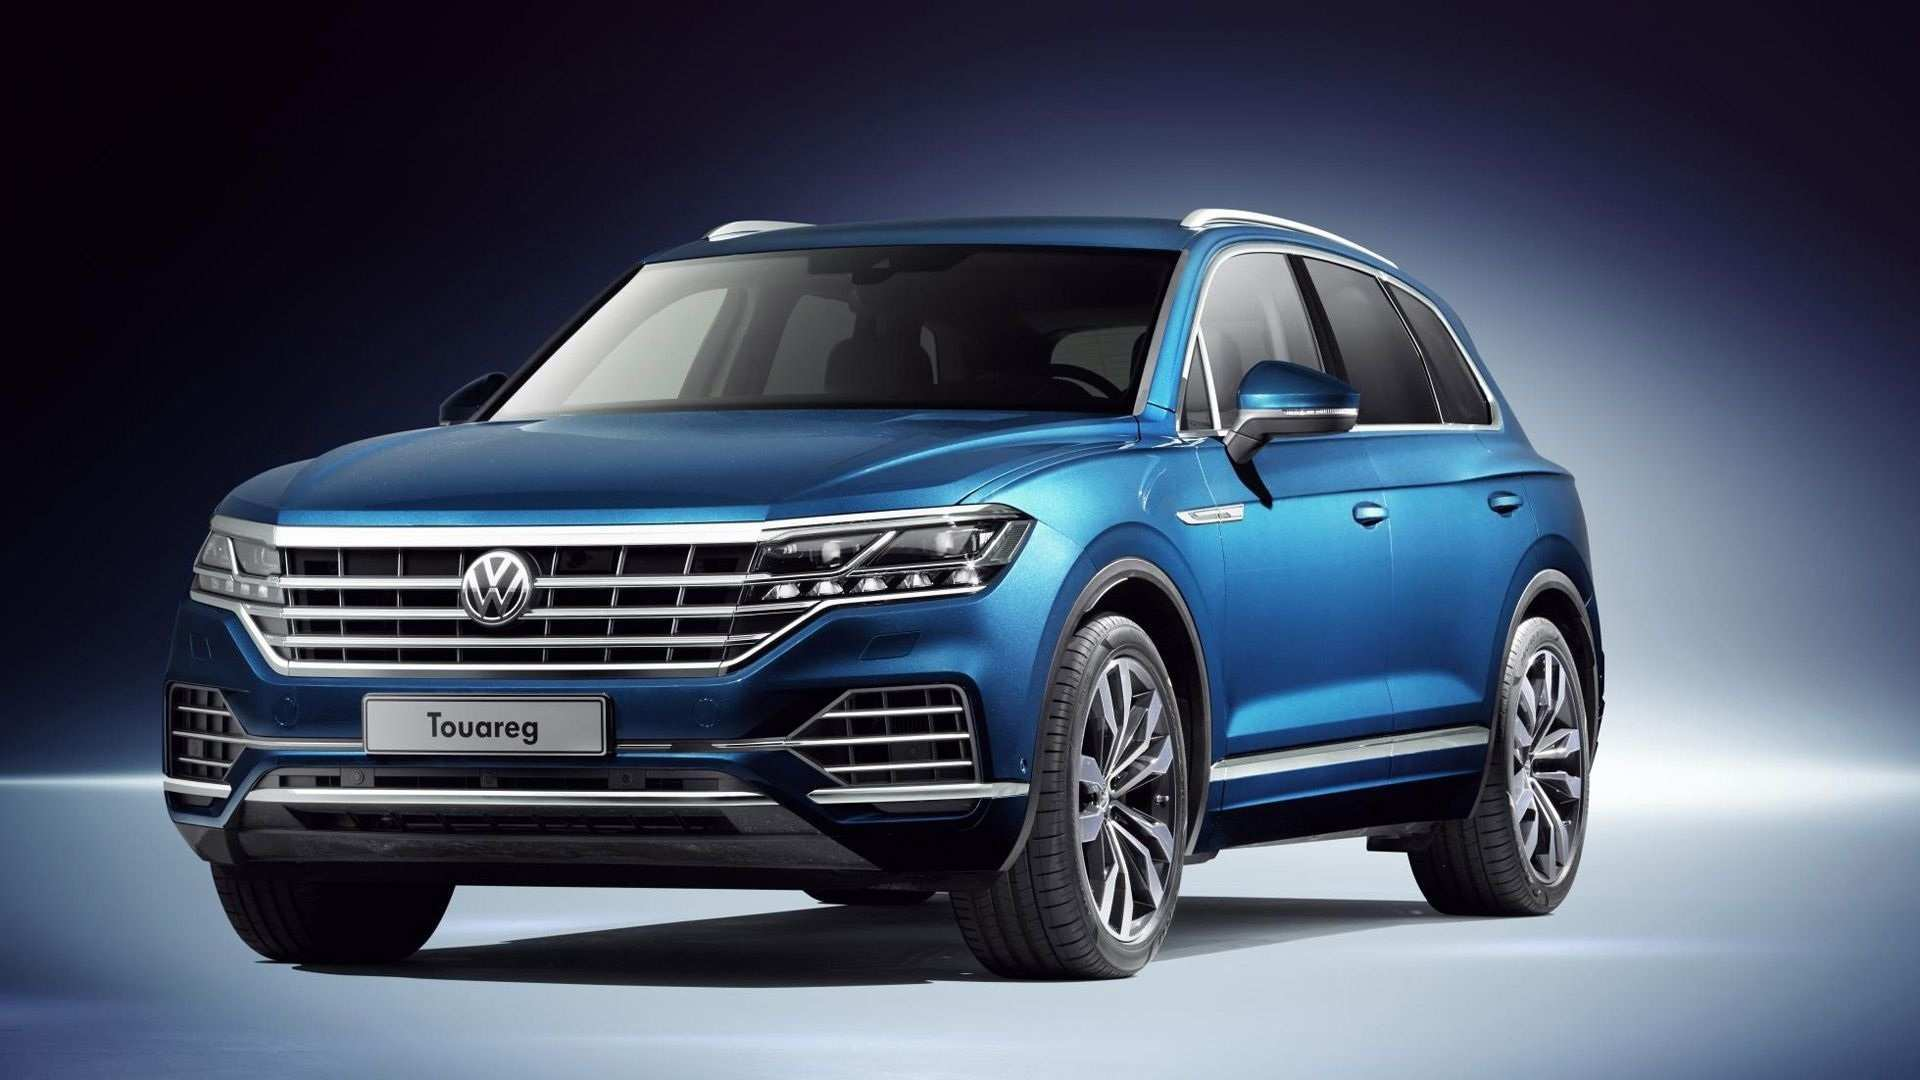 71 The Touareg Redesign Picture by Touareg Redesign